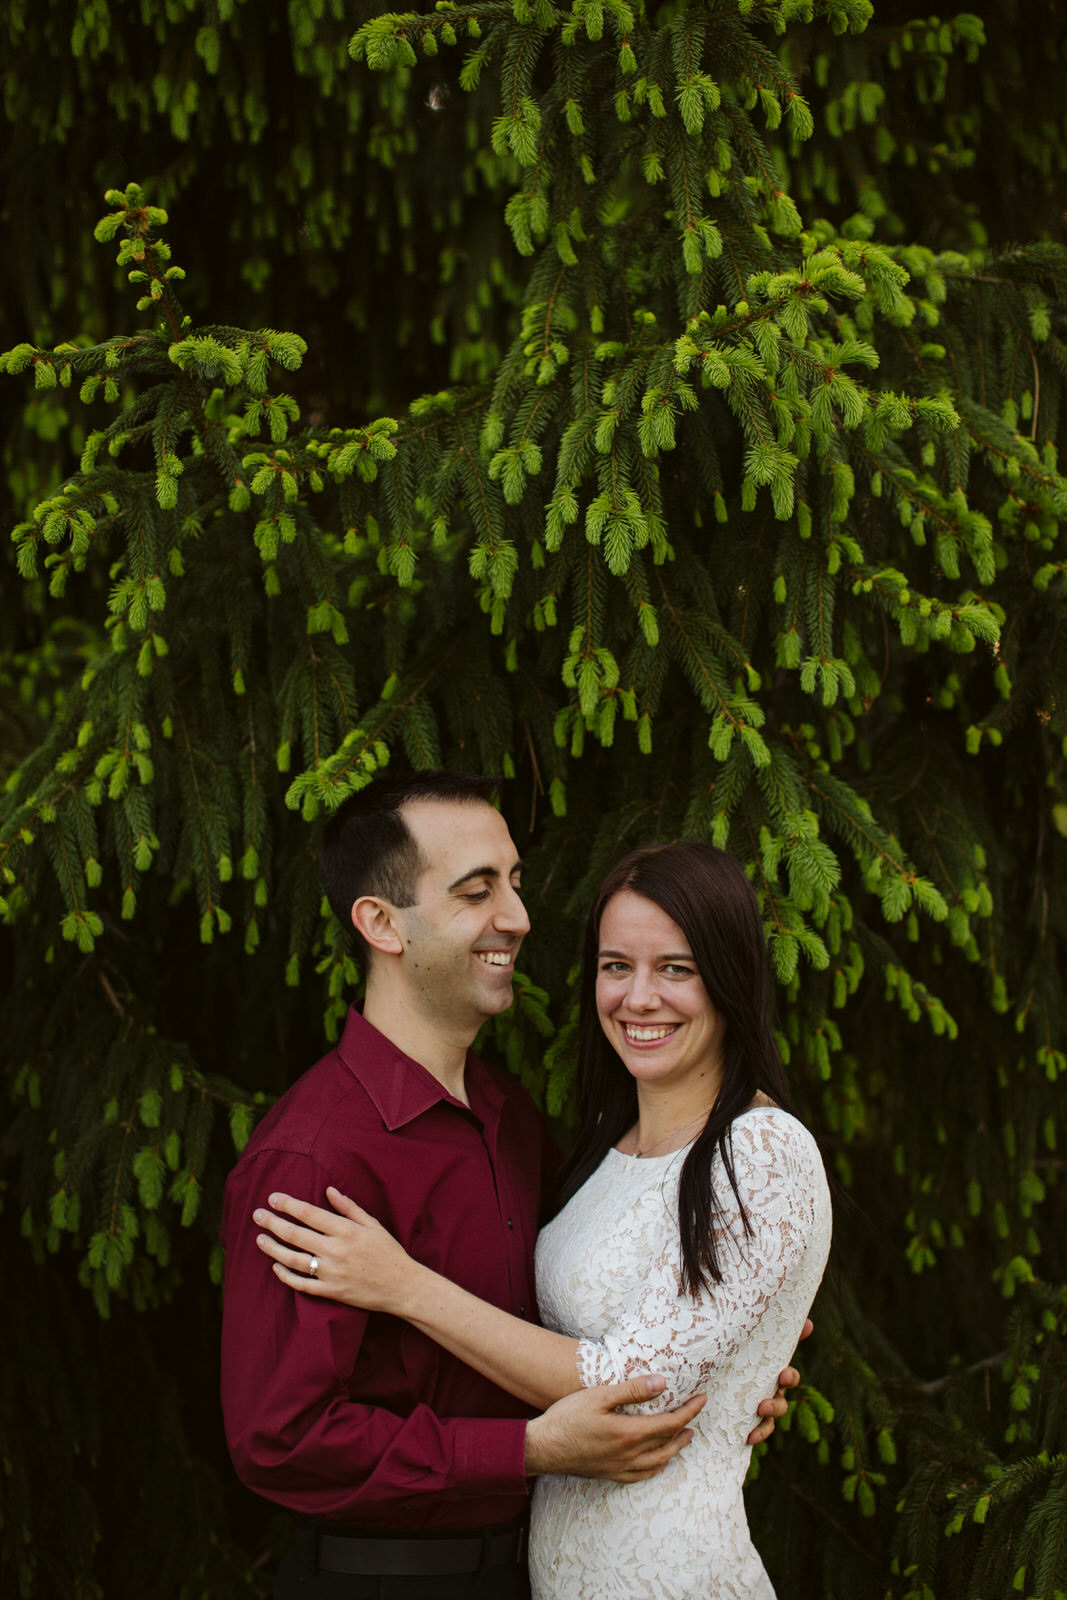 sunset-engagement-portraits-jersey-shore-asbury-park-tiny-house-photo-wedding-photographer-22.jpg